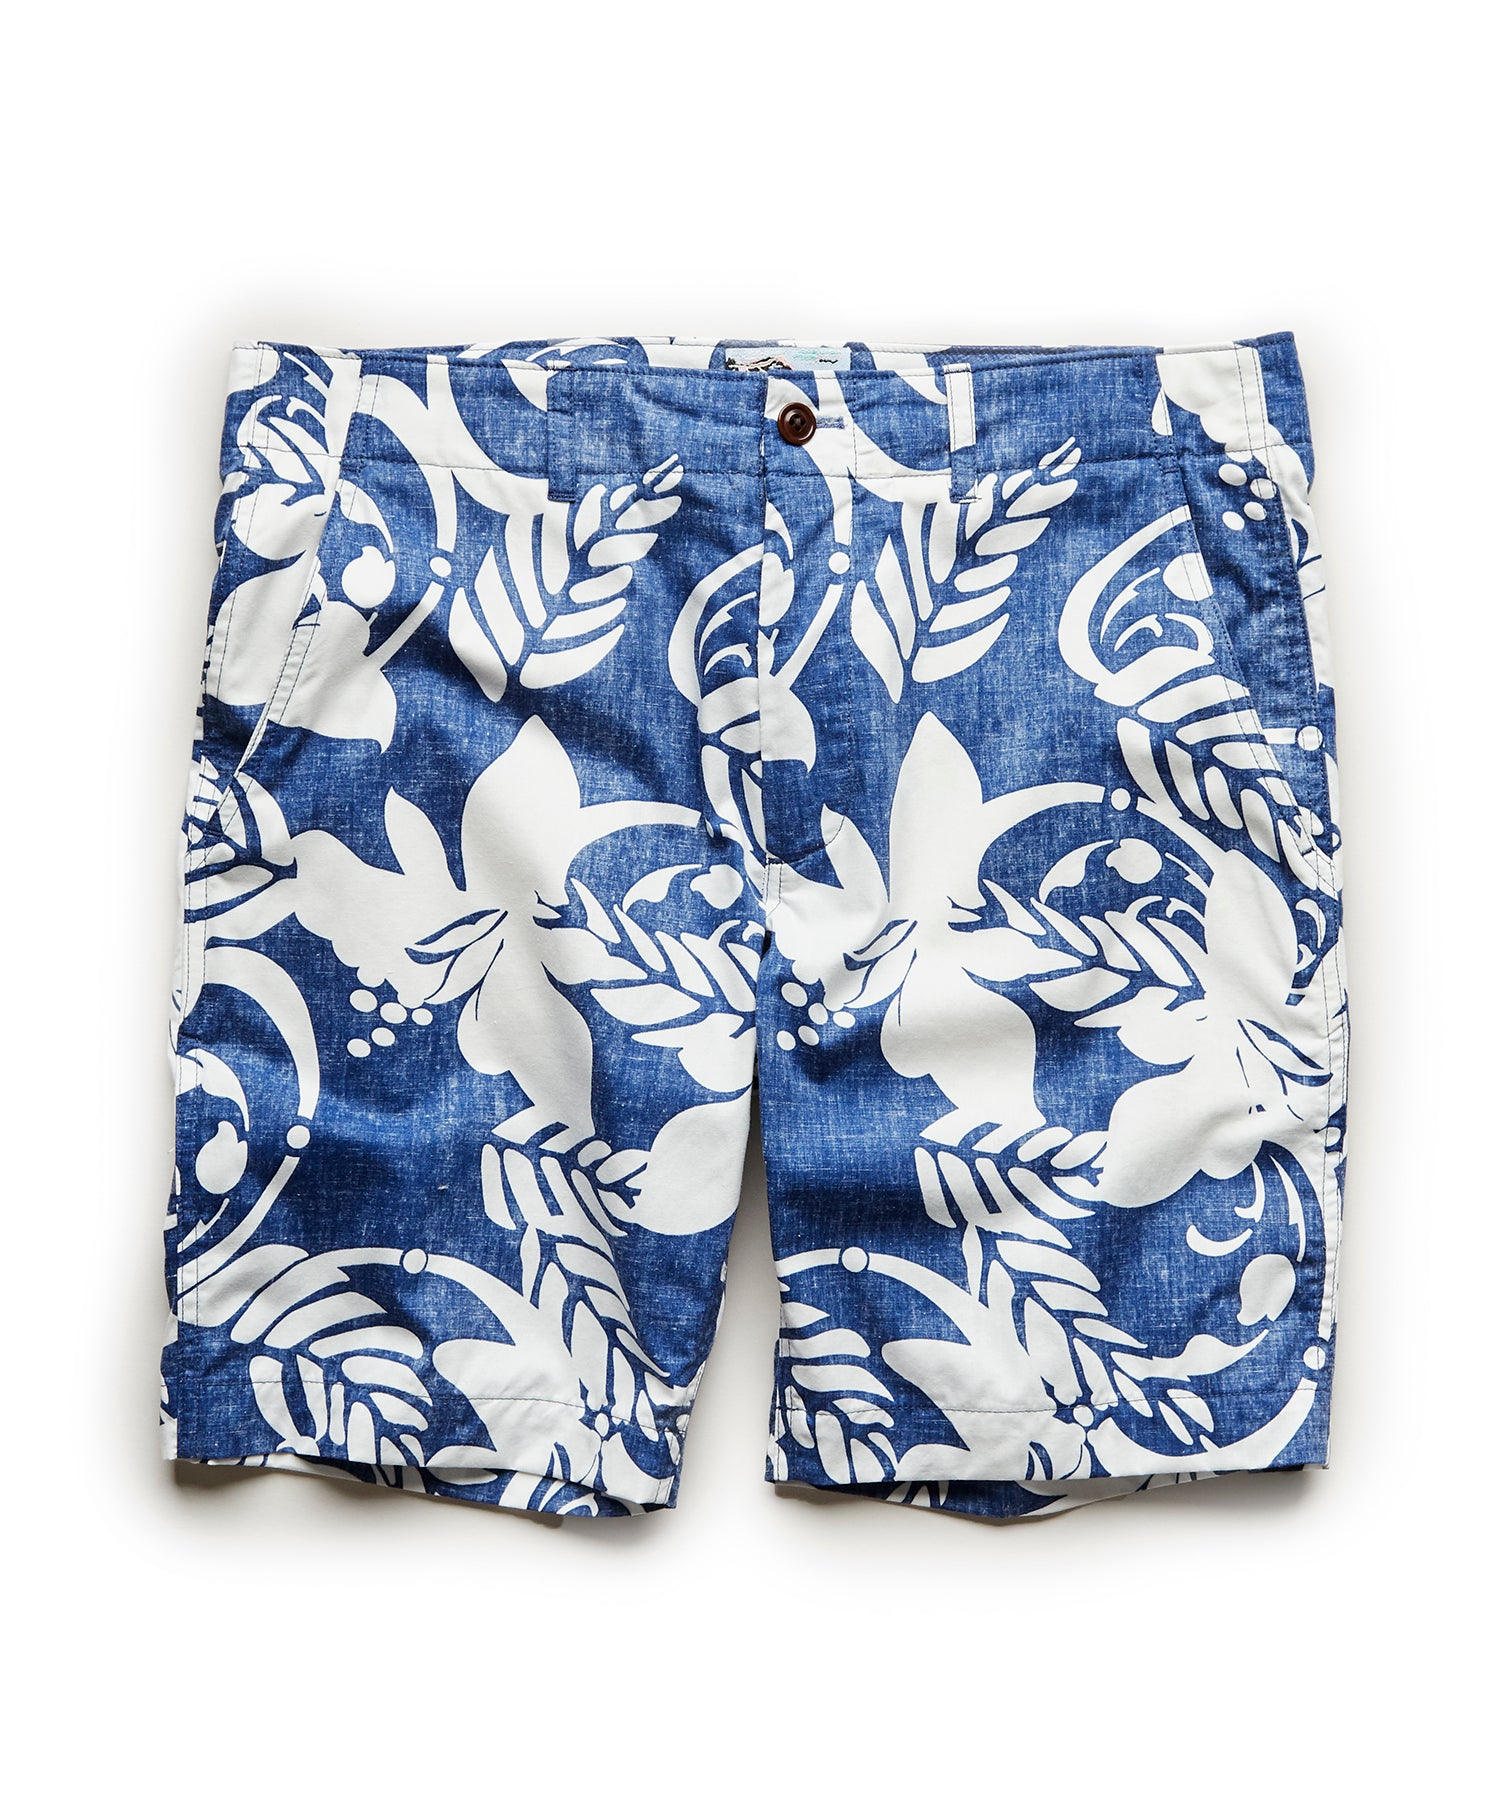 Exclusive Reyn Spooner Surplus Shorts in Blue Floral